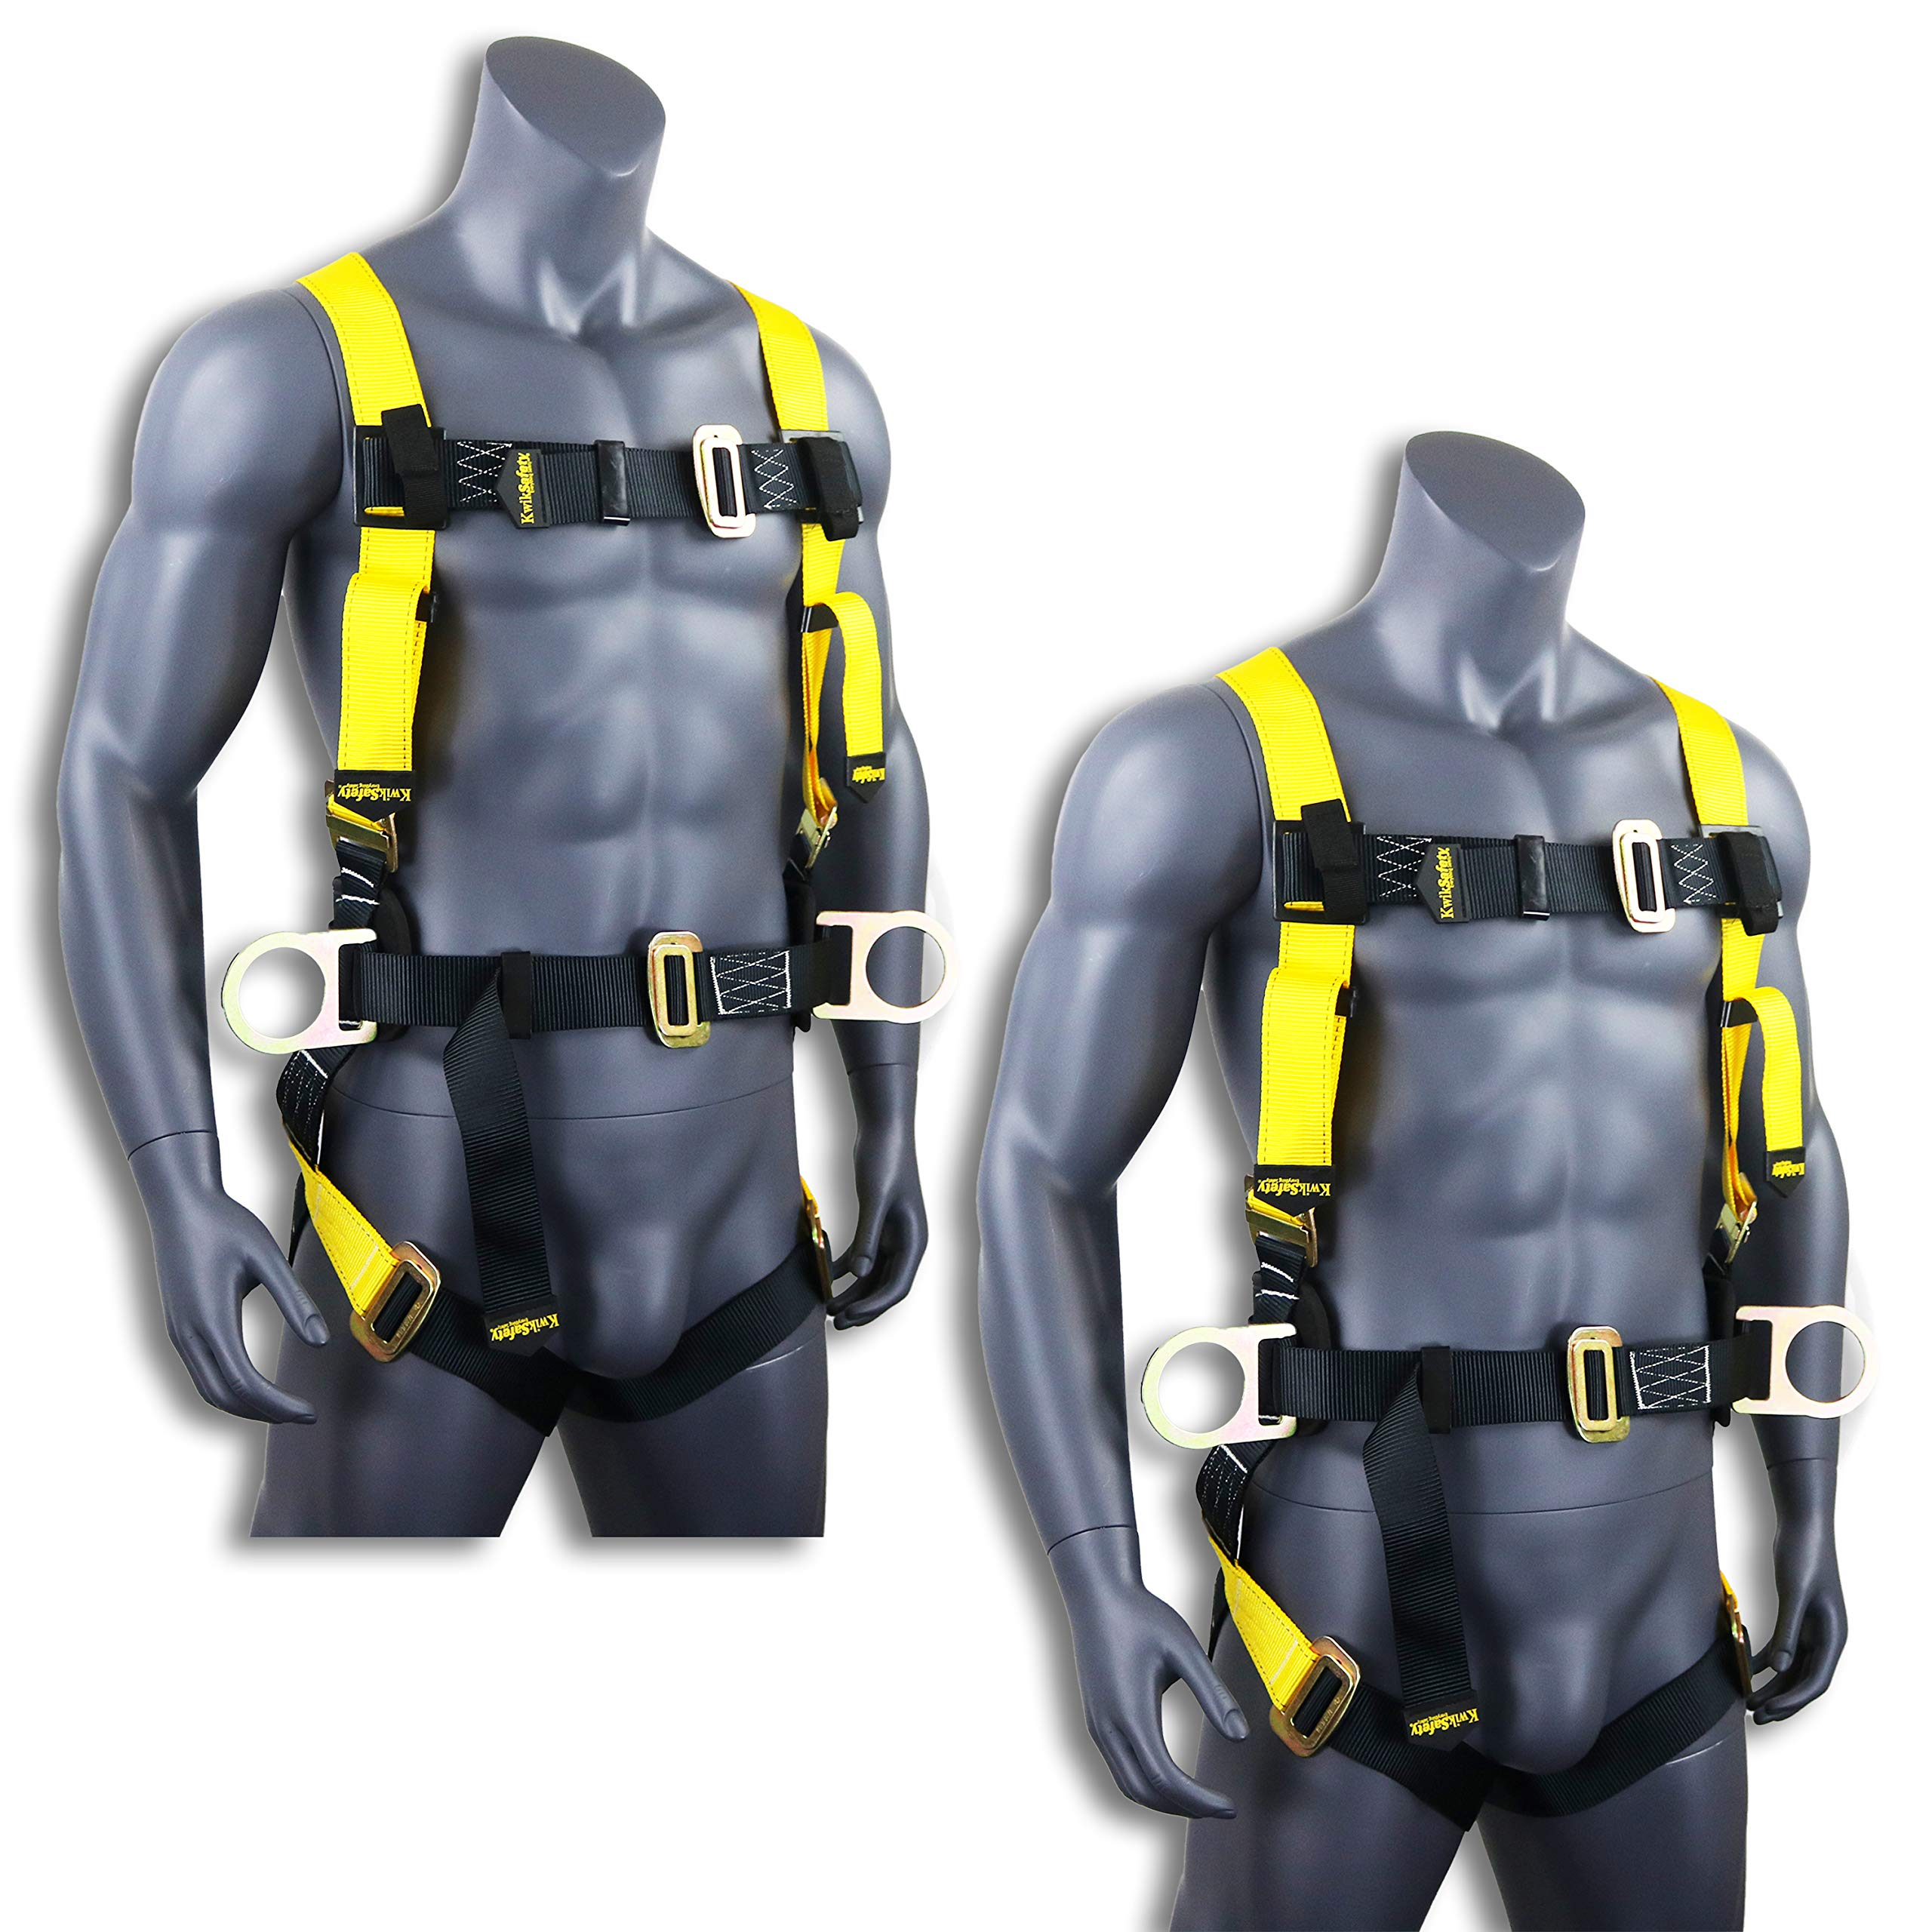 KwikSafety (Charlotte, NC) 2 PACK HURRICANE   OSHA ANSI Fall Protection Full Body Safety Harness w/Back Support, Personal Protective Equipment, Dorsal Ring Side D-Rings Construction Industrial Roofing